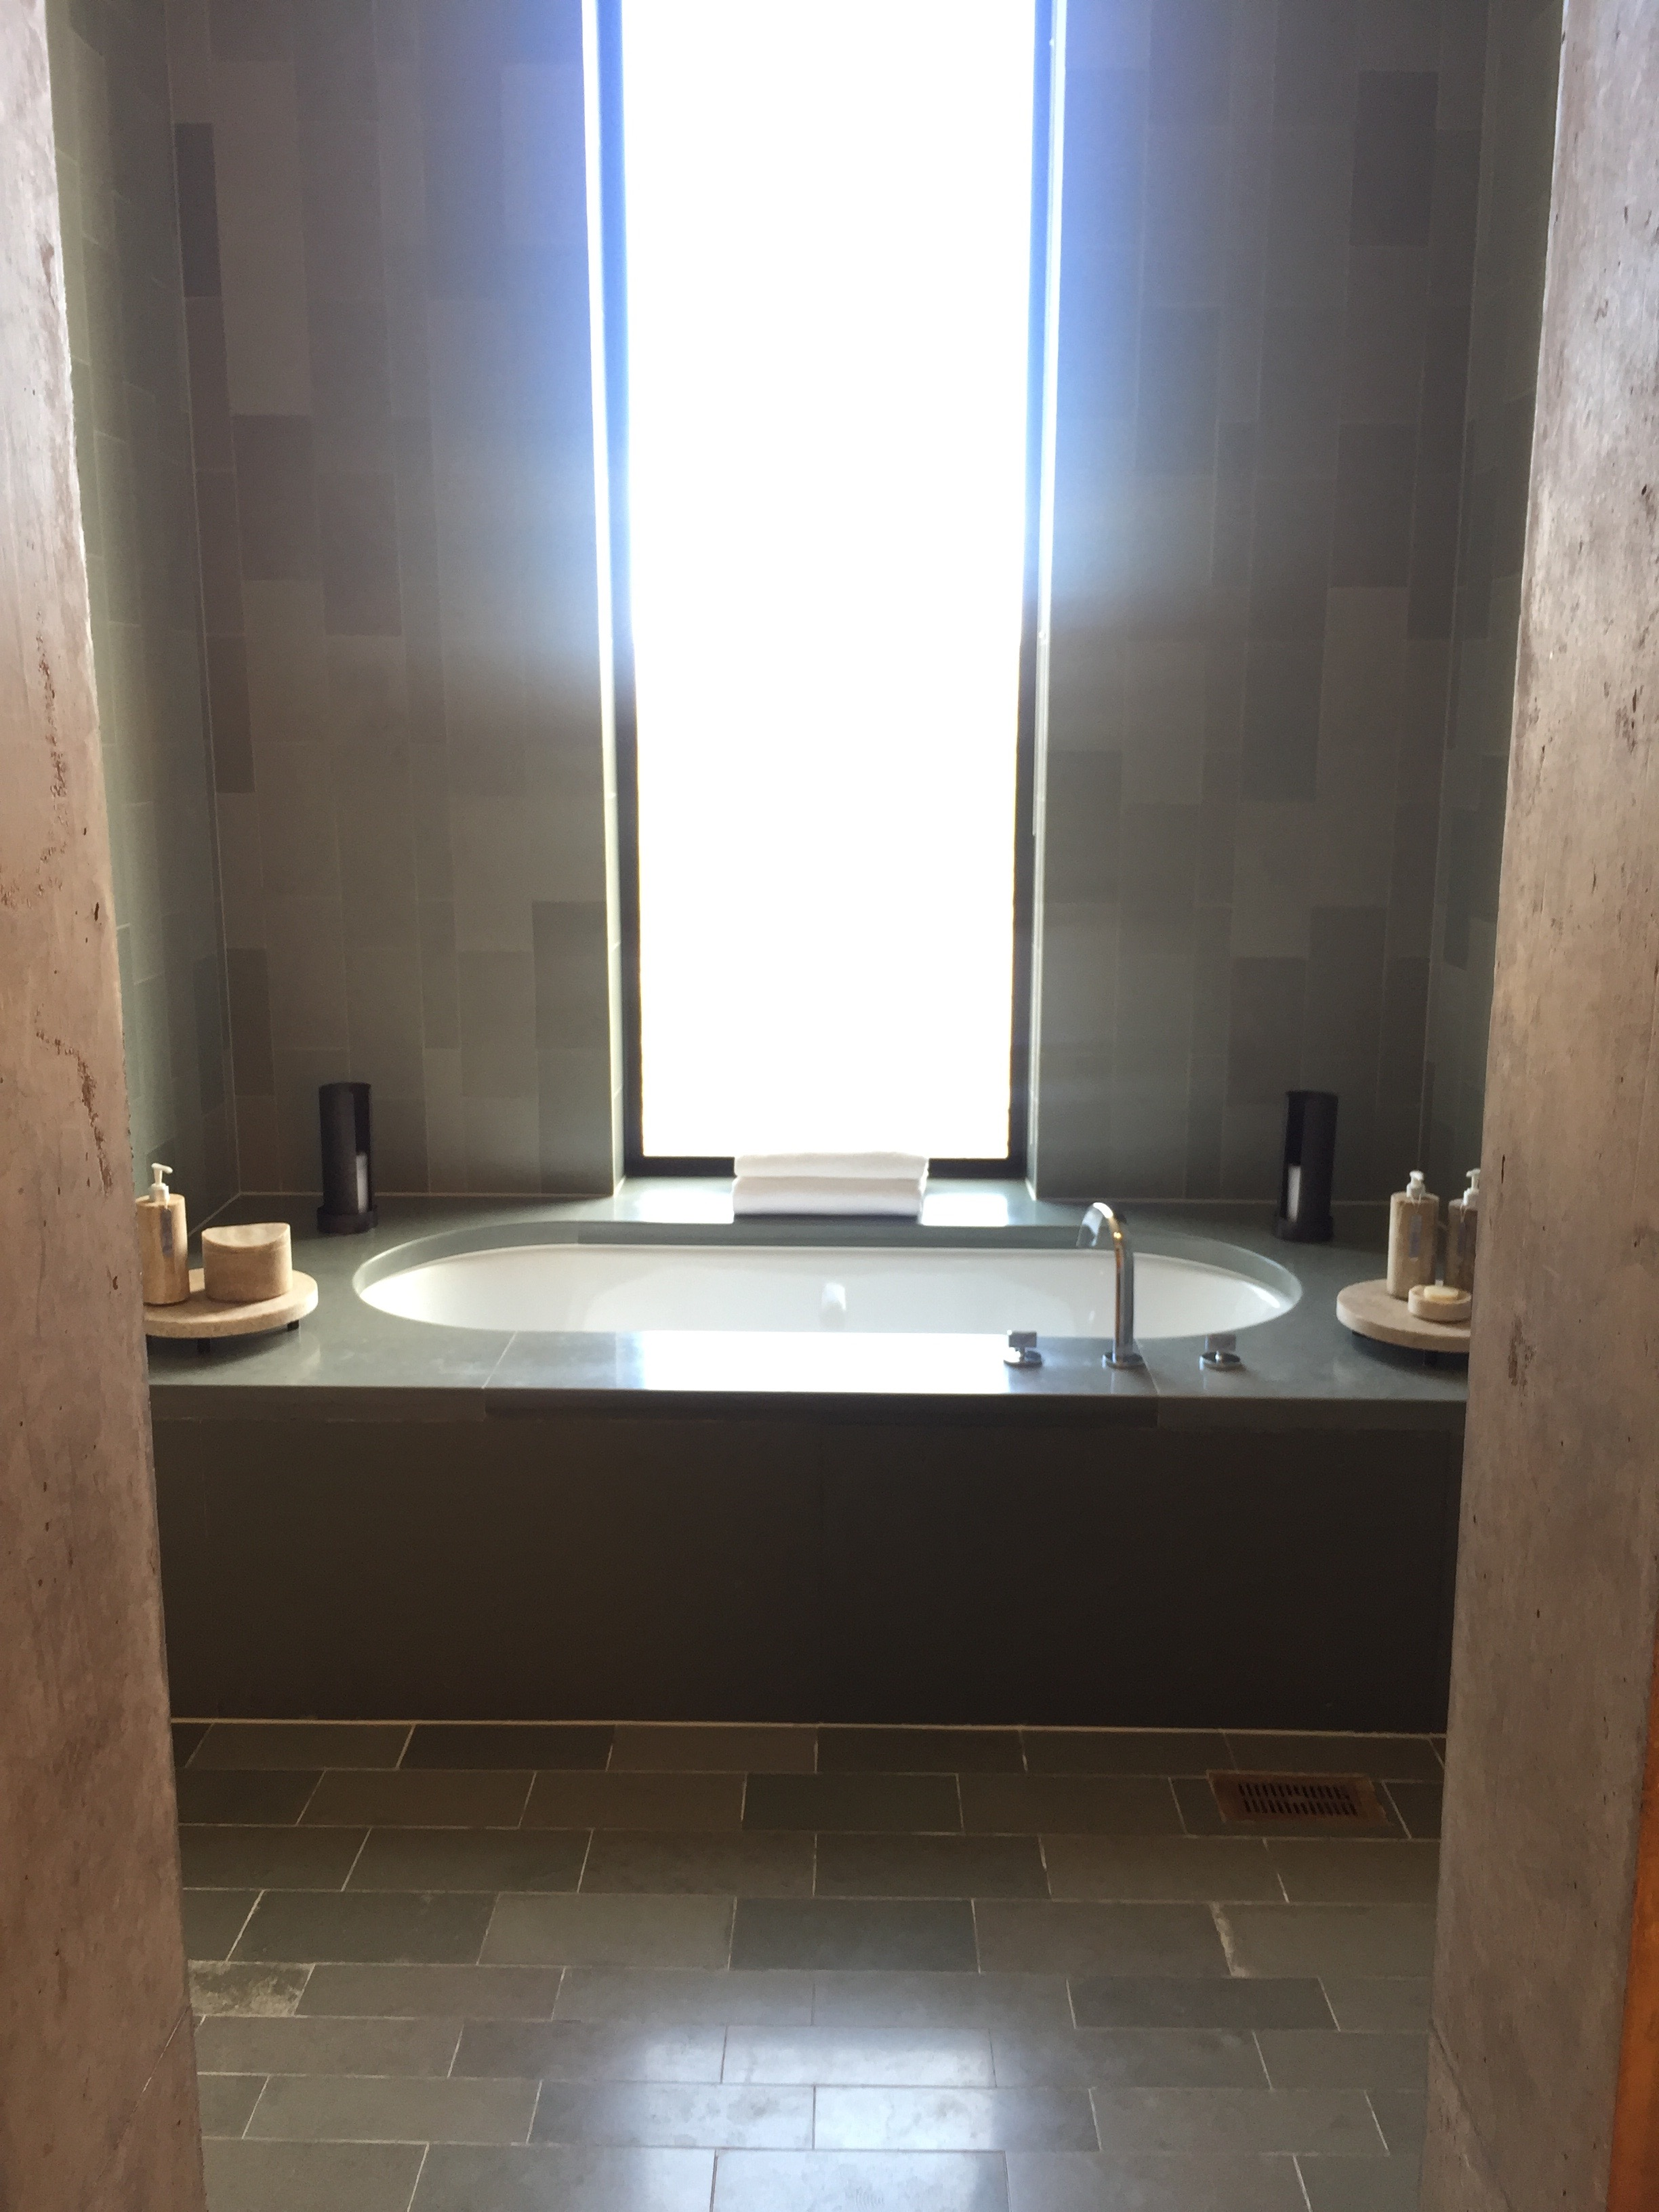 Beautiful view while relaxing in a bath